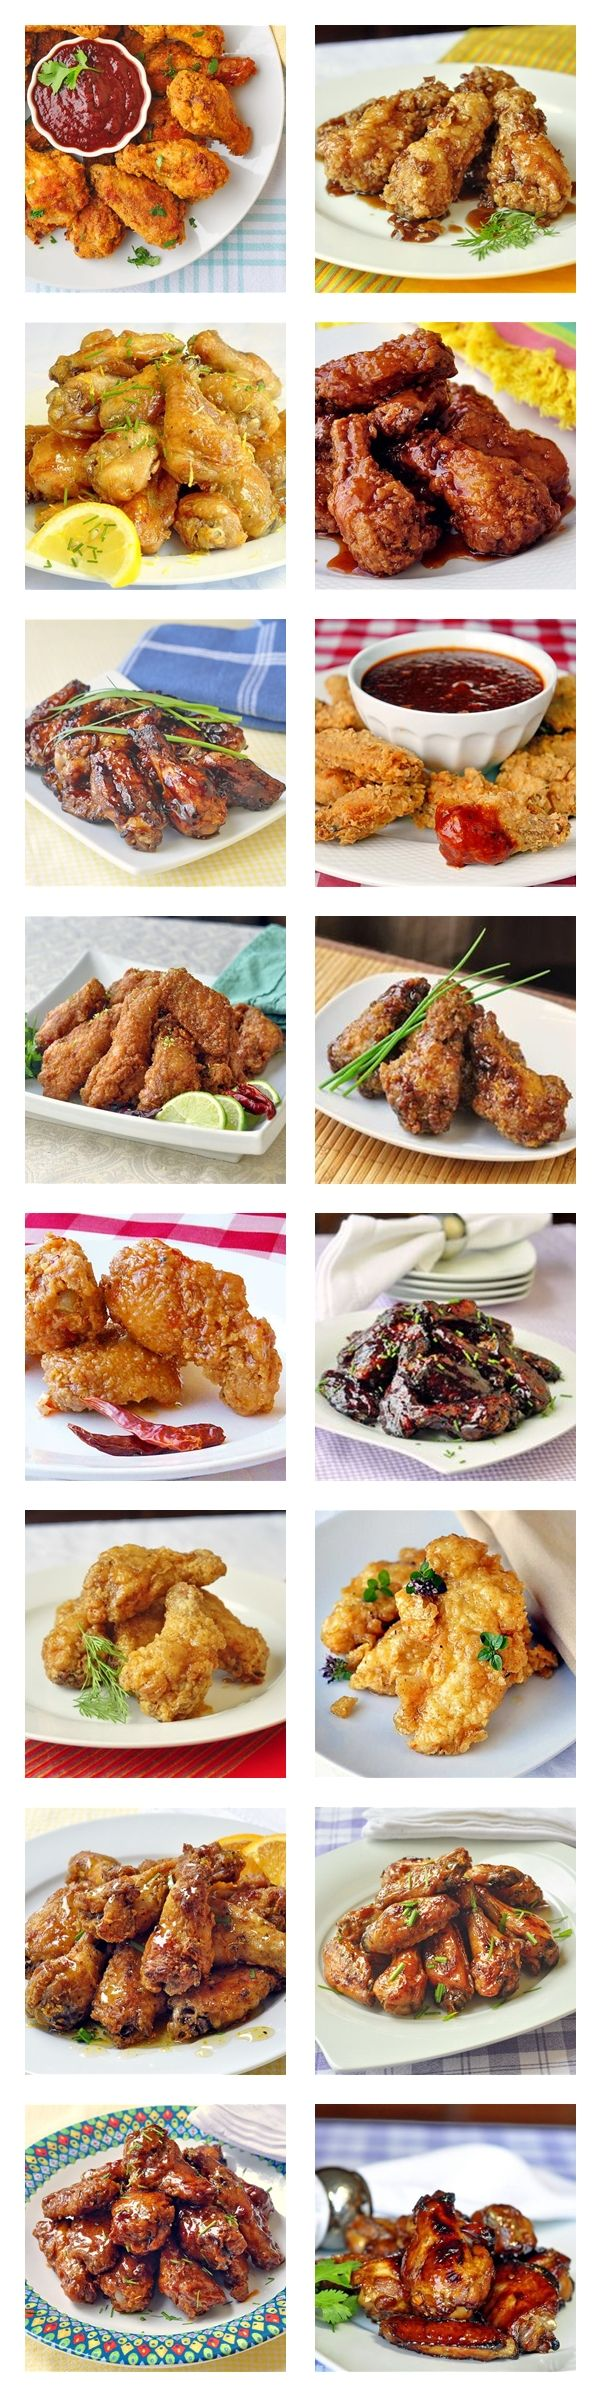 Need some wings to go with those St, Patrick's Day pints? This collection includes some great ones from Chili Lime, Maple Chipotle and Crispy Honey BBQ to Honey Garlic, Southern fried with Orange Honey Drizzle and Brown Sugar and Dijon Glazed.